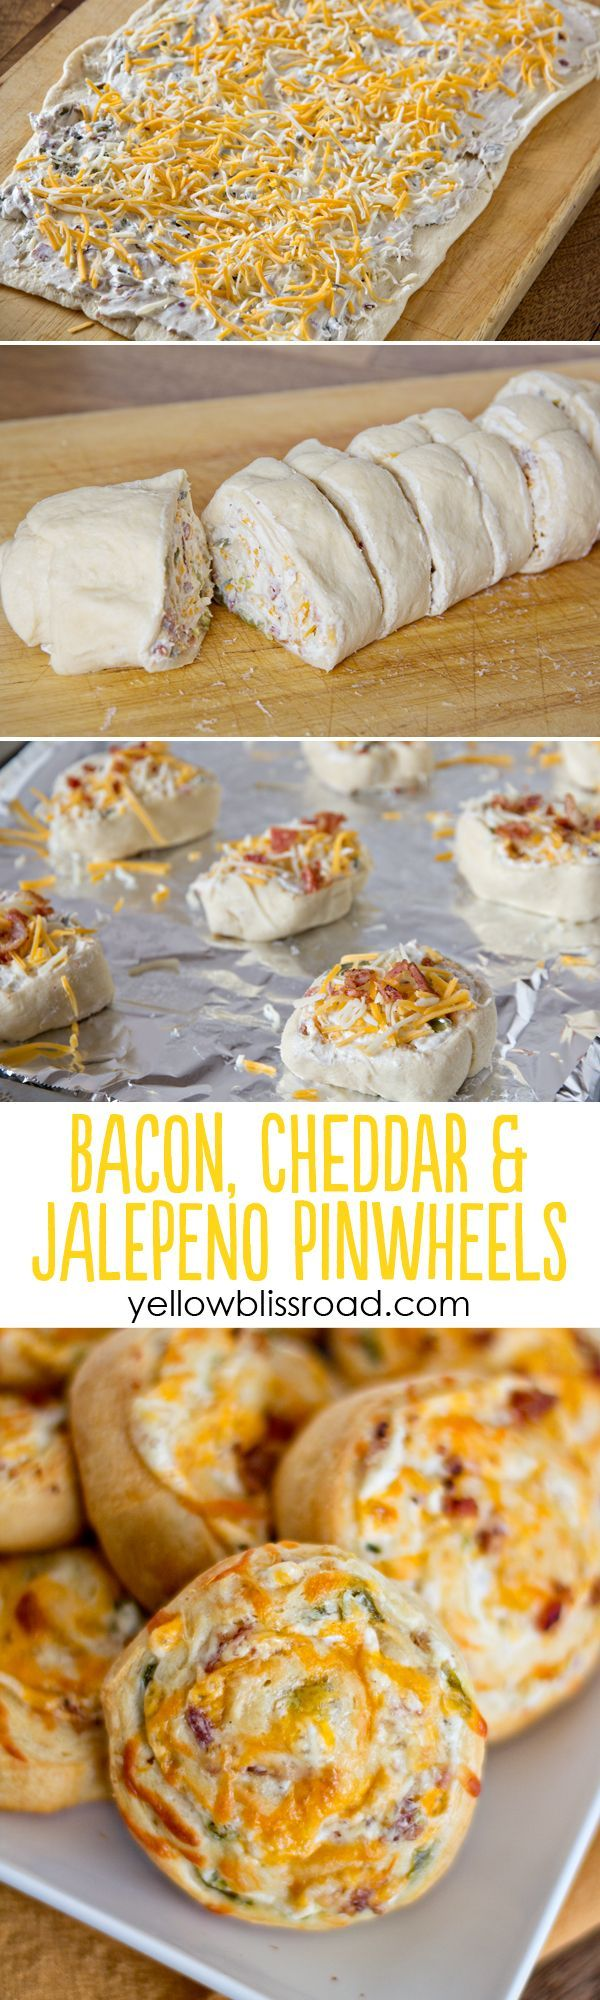 Bacon Cheddar Jalapeno Pinwheels - Made these.  Took longer to cook than what it said.  I would probably double the filling next time.  Use extra cheese AND bacon to sprinkle on top.